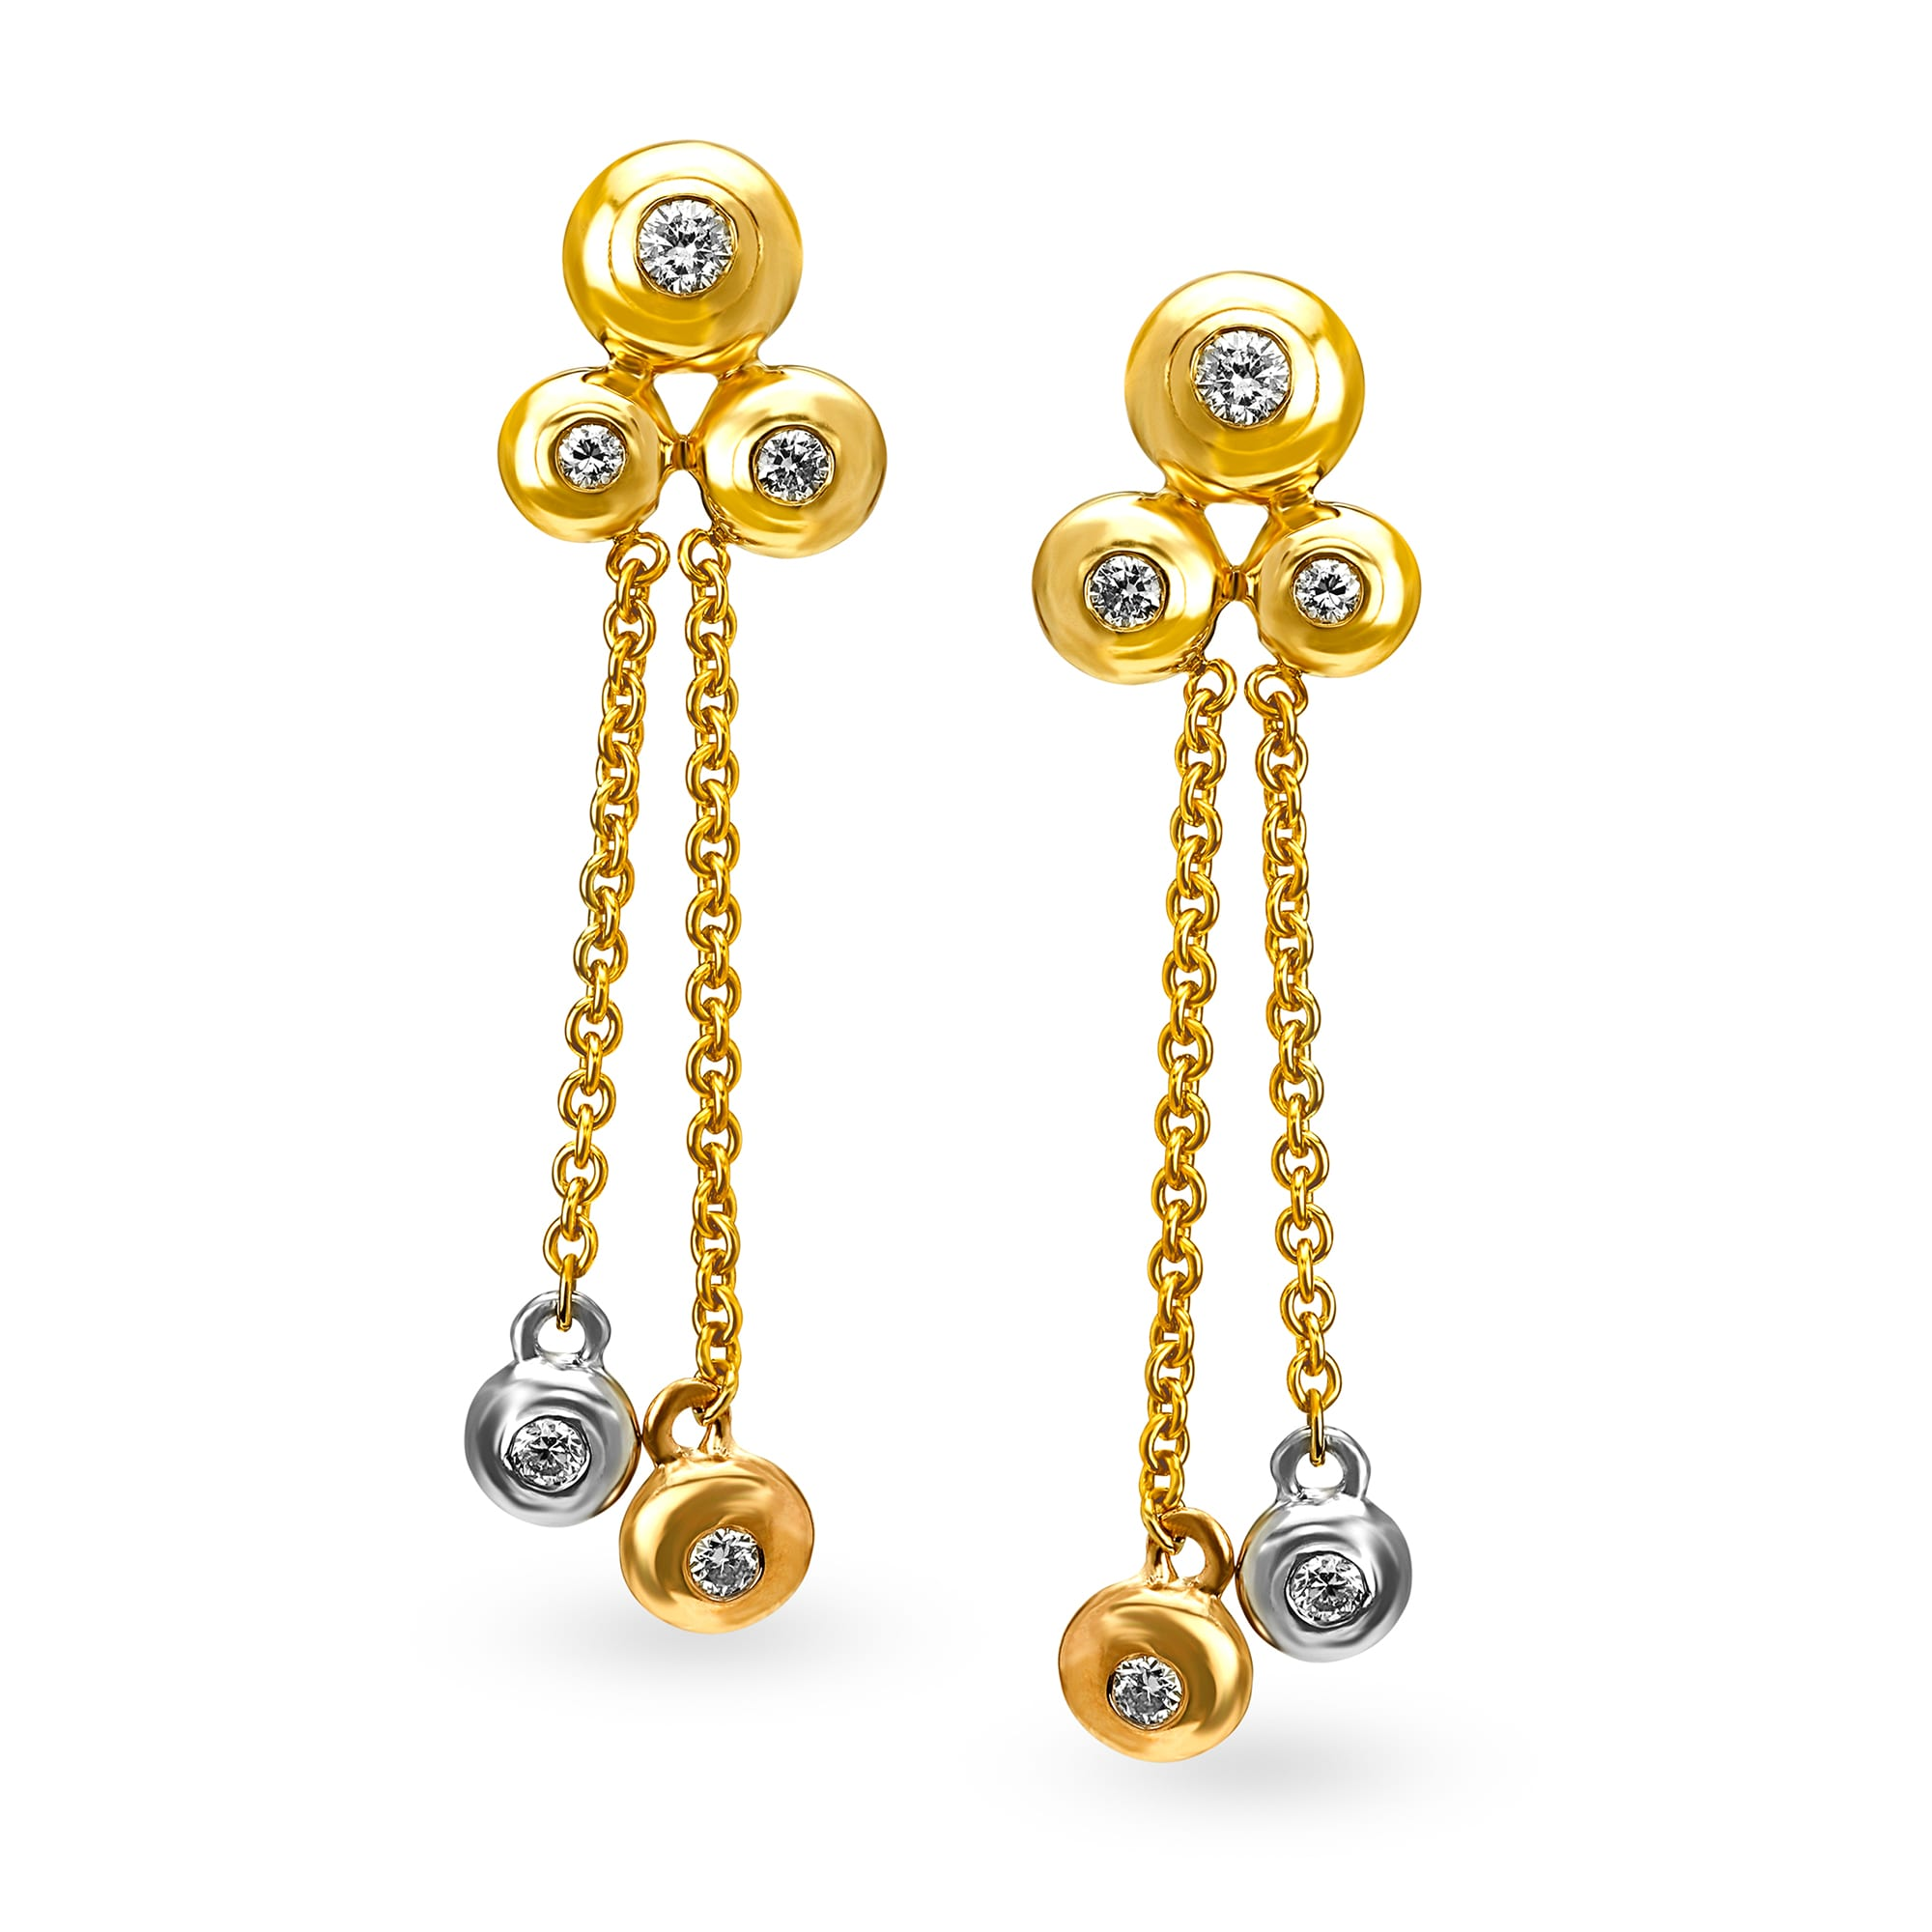 5188e271a5c02 Mia by Tanishq 14KT Yellow Gold Diamond Drop Earrings with Bezel Design